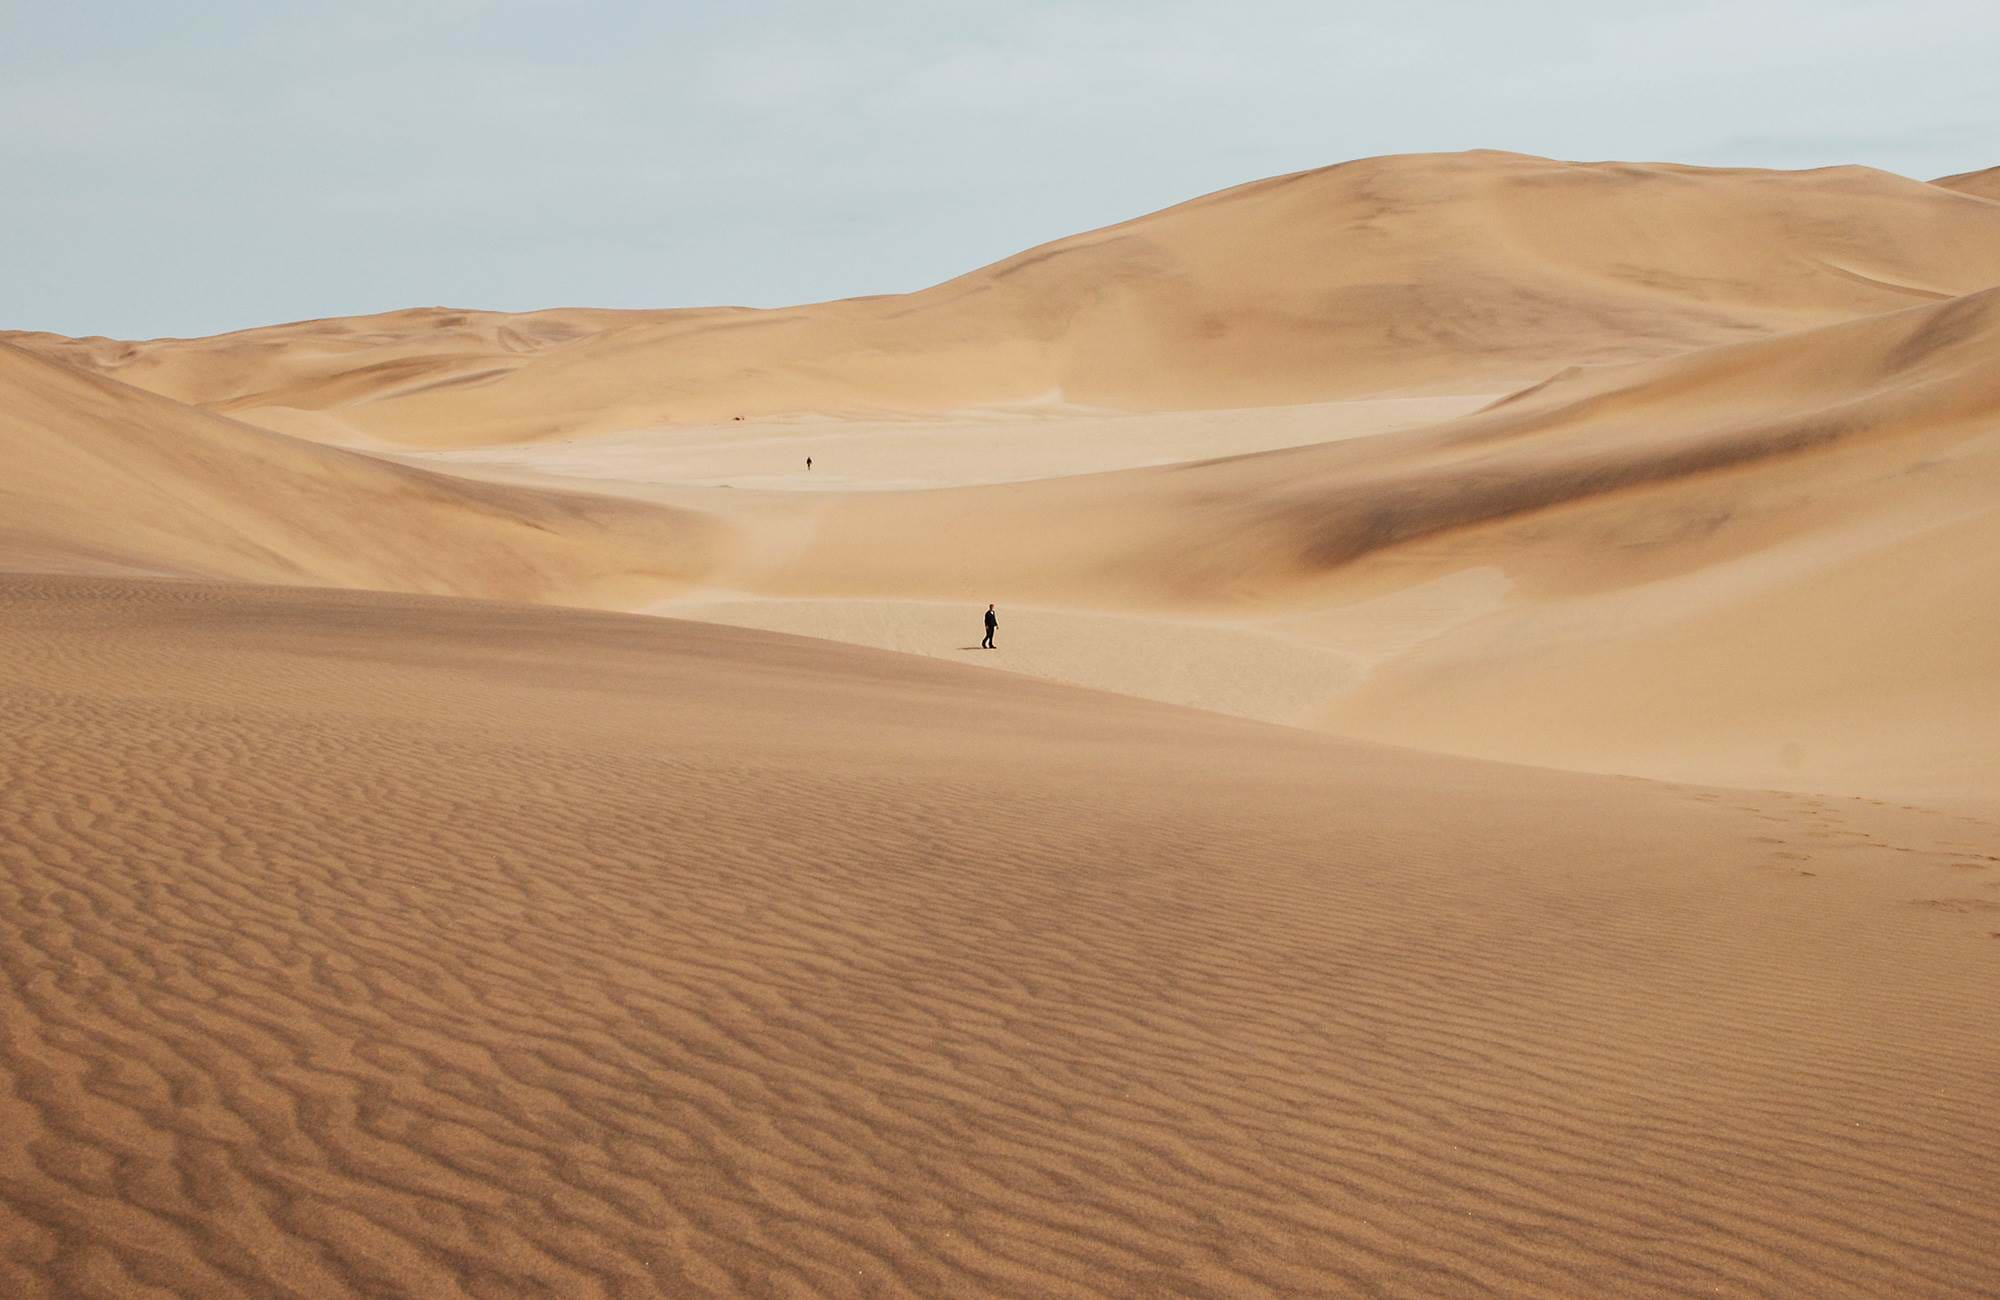 namibia-sand-dunes-alone-in-the-desert